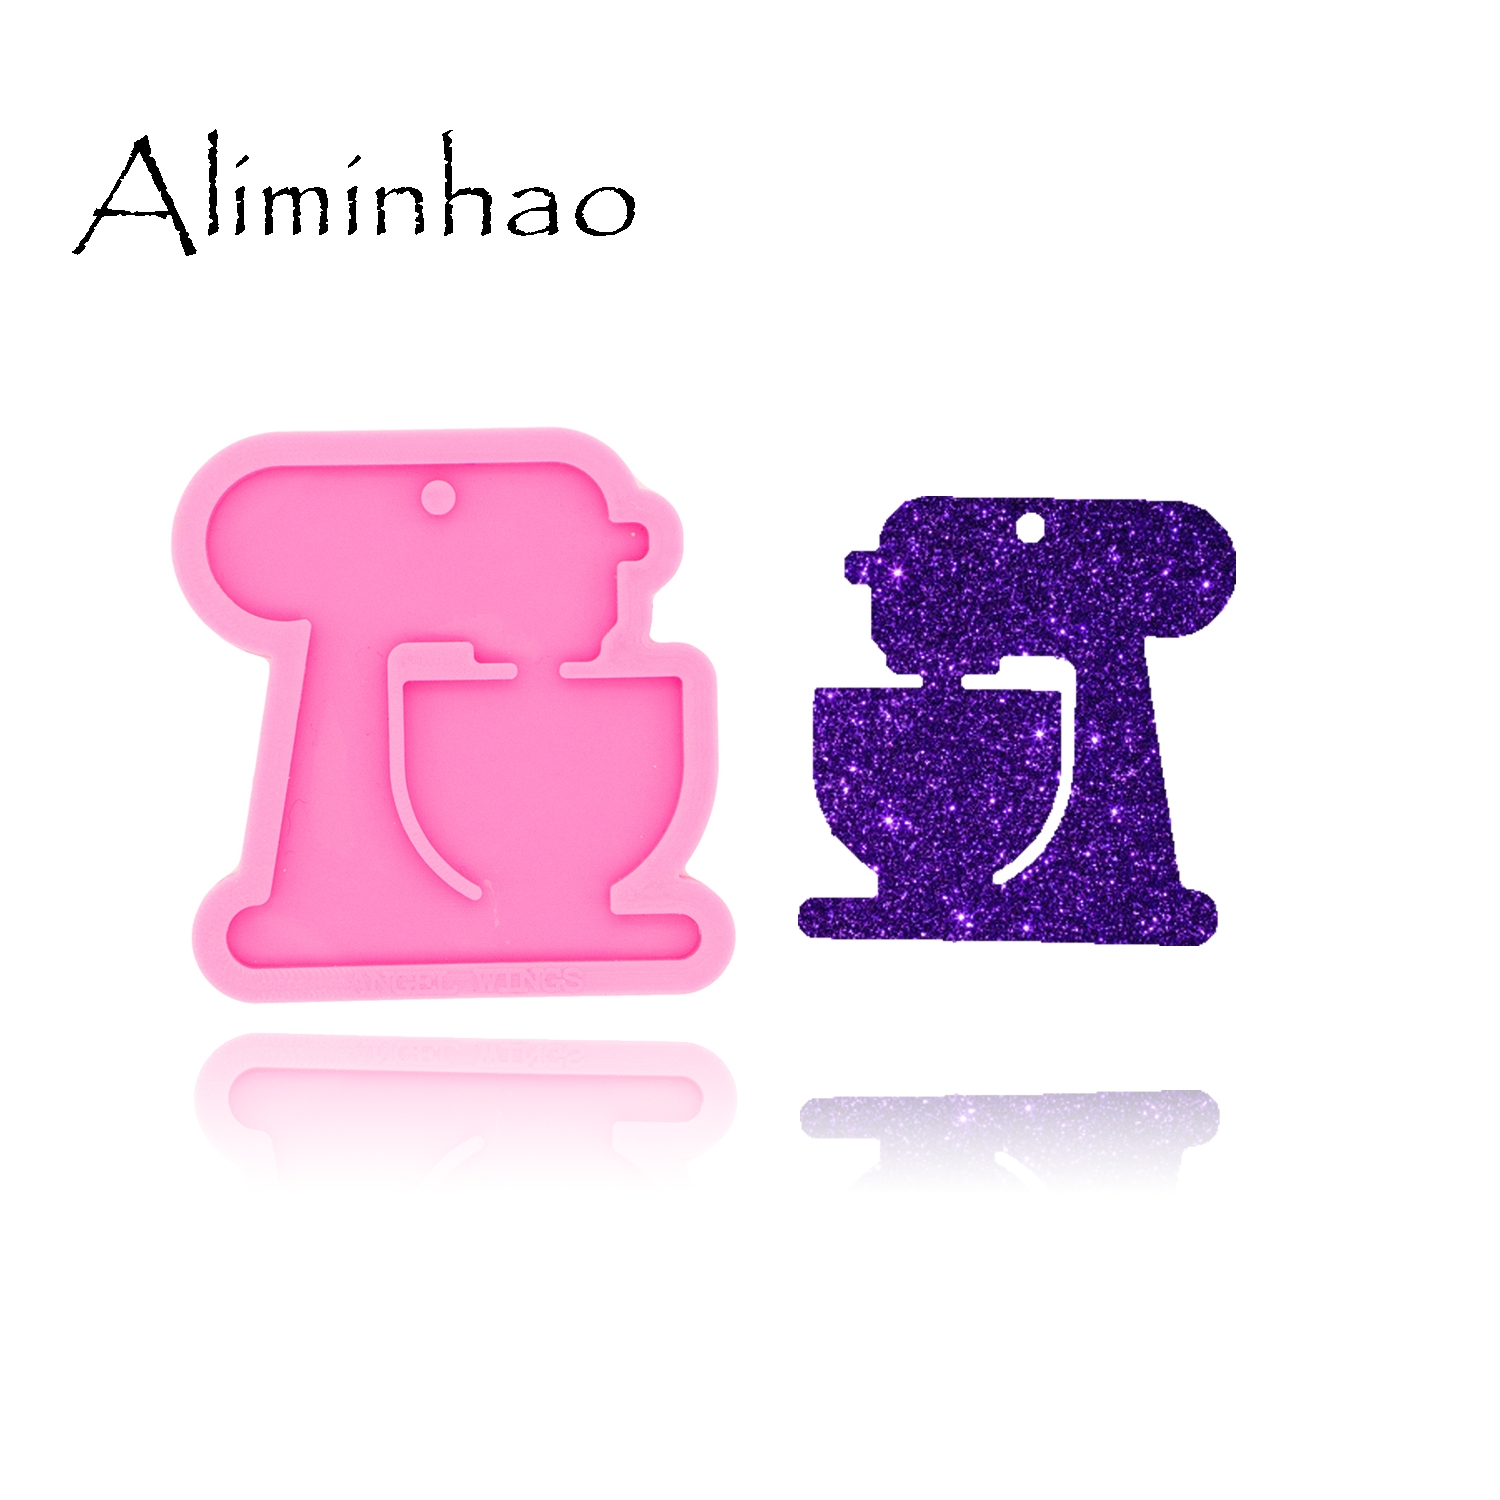 DY0445 Shiny Glossy Sewing Machine Necklace Jewelry Epoxy Mould Crafting Keychain Silicon Resin Silicone Mold